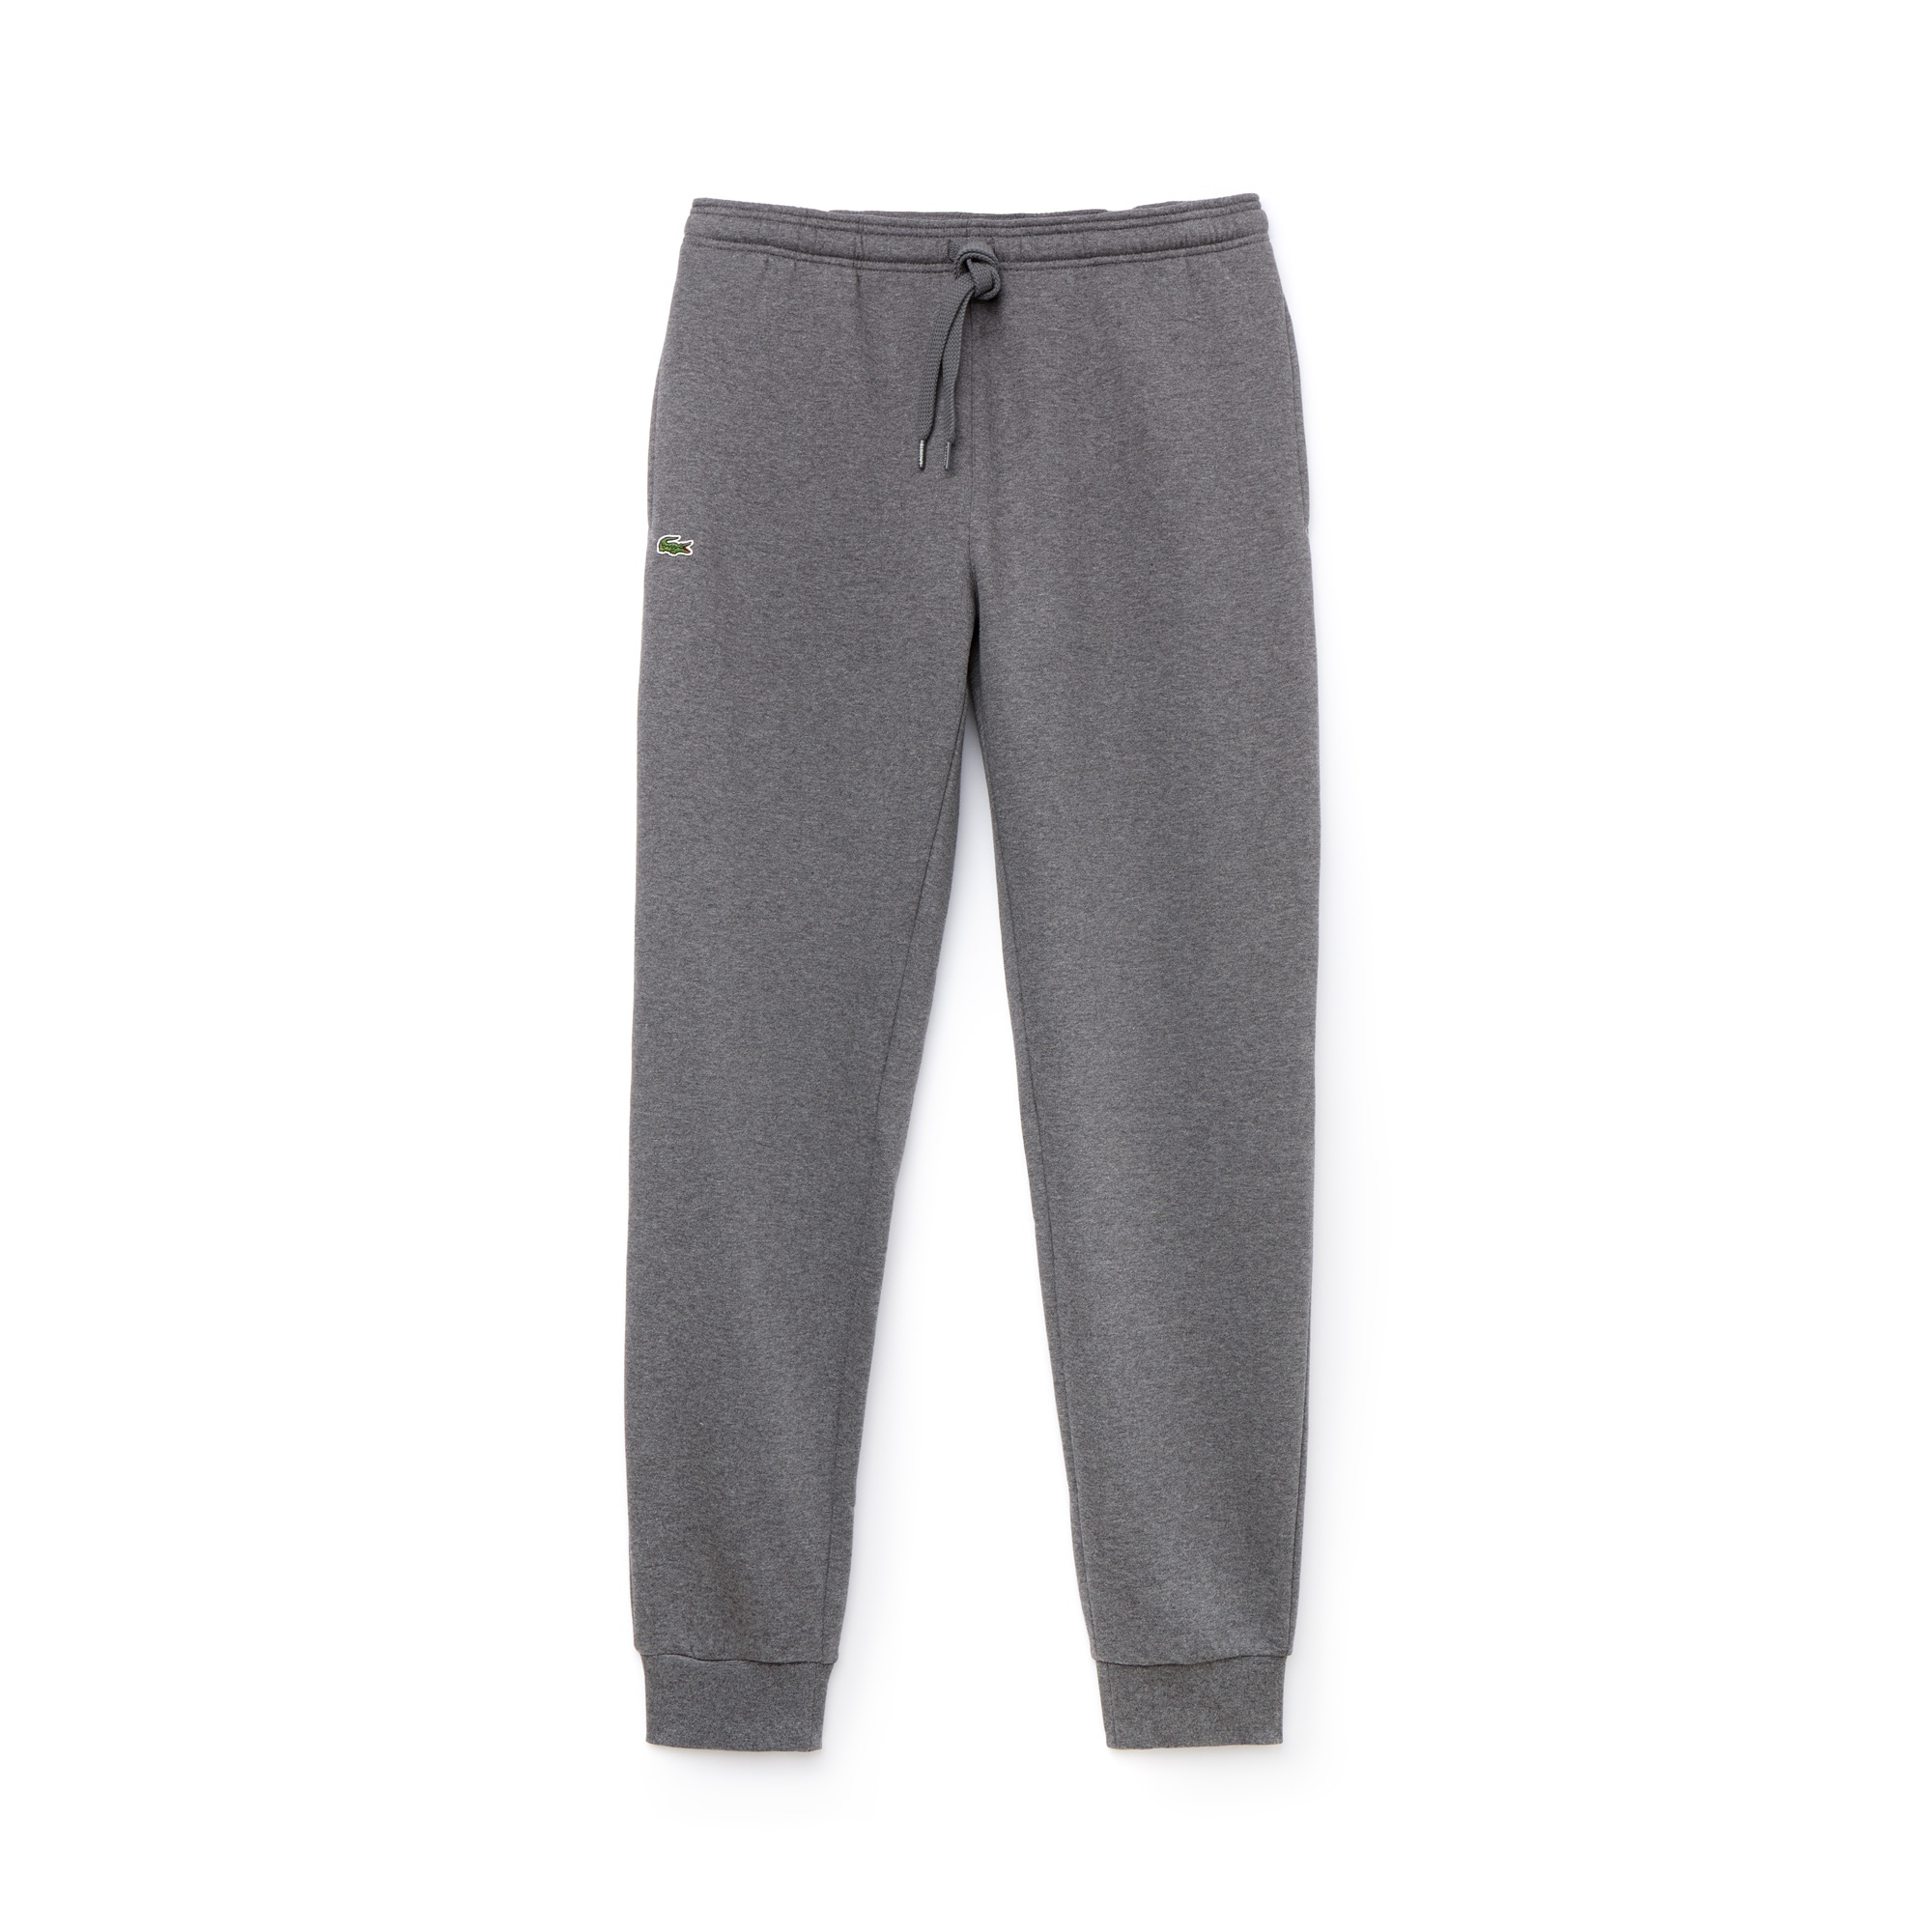 라코스테 스포츠 스웻 팬츠 Lacoste Mens SPORT Cotton Fleece Tennis Sweatpants,pitch grey